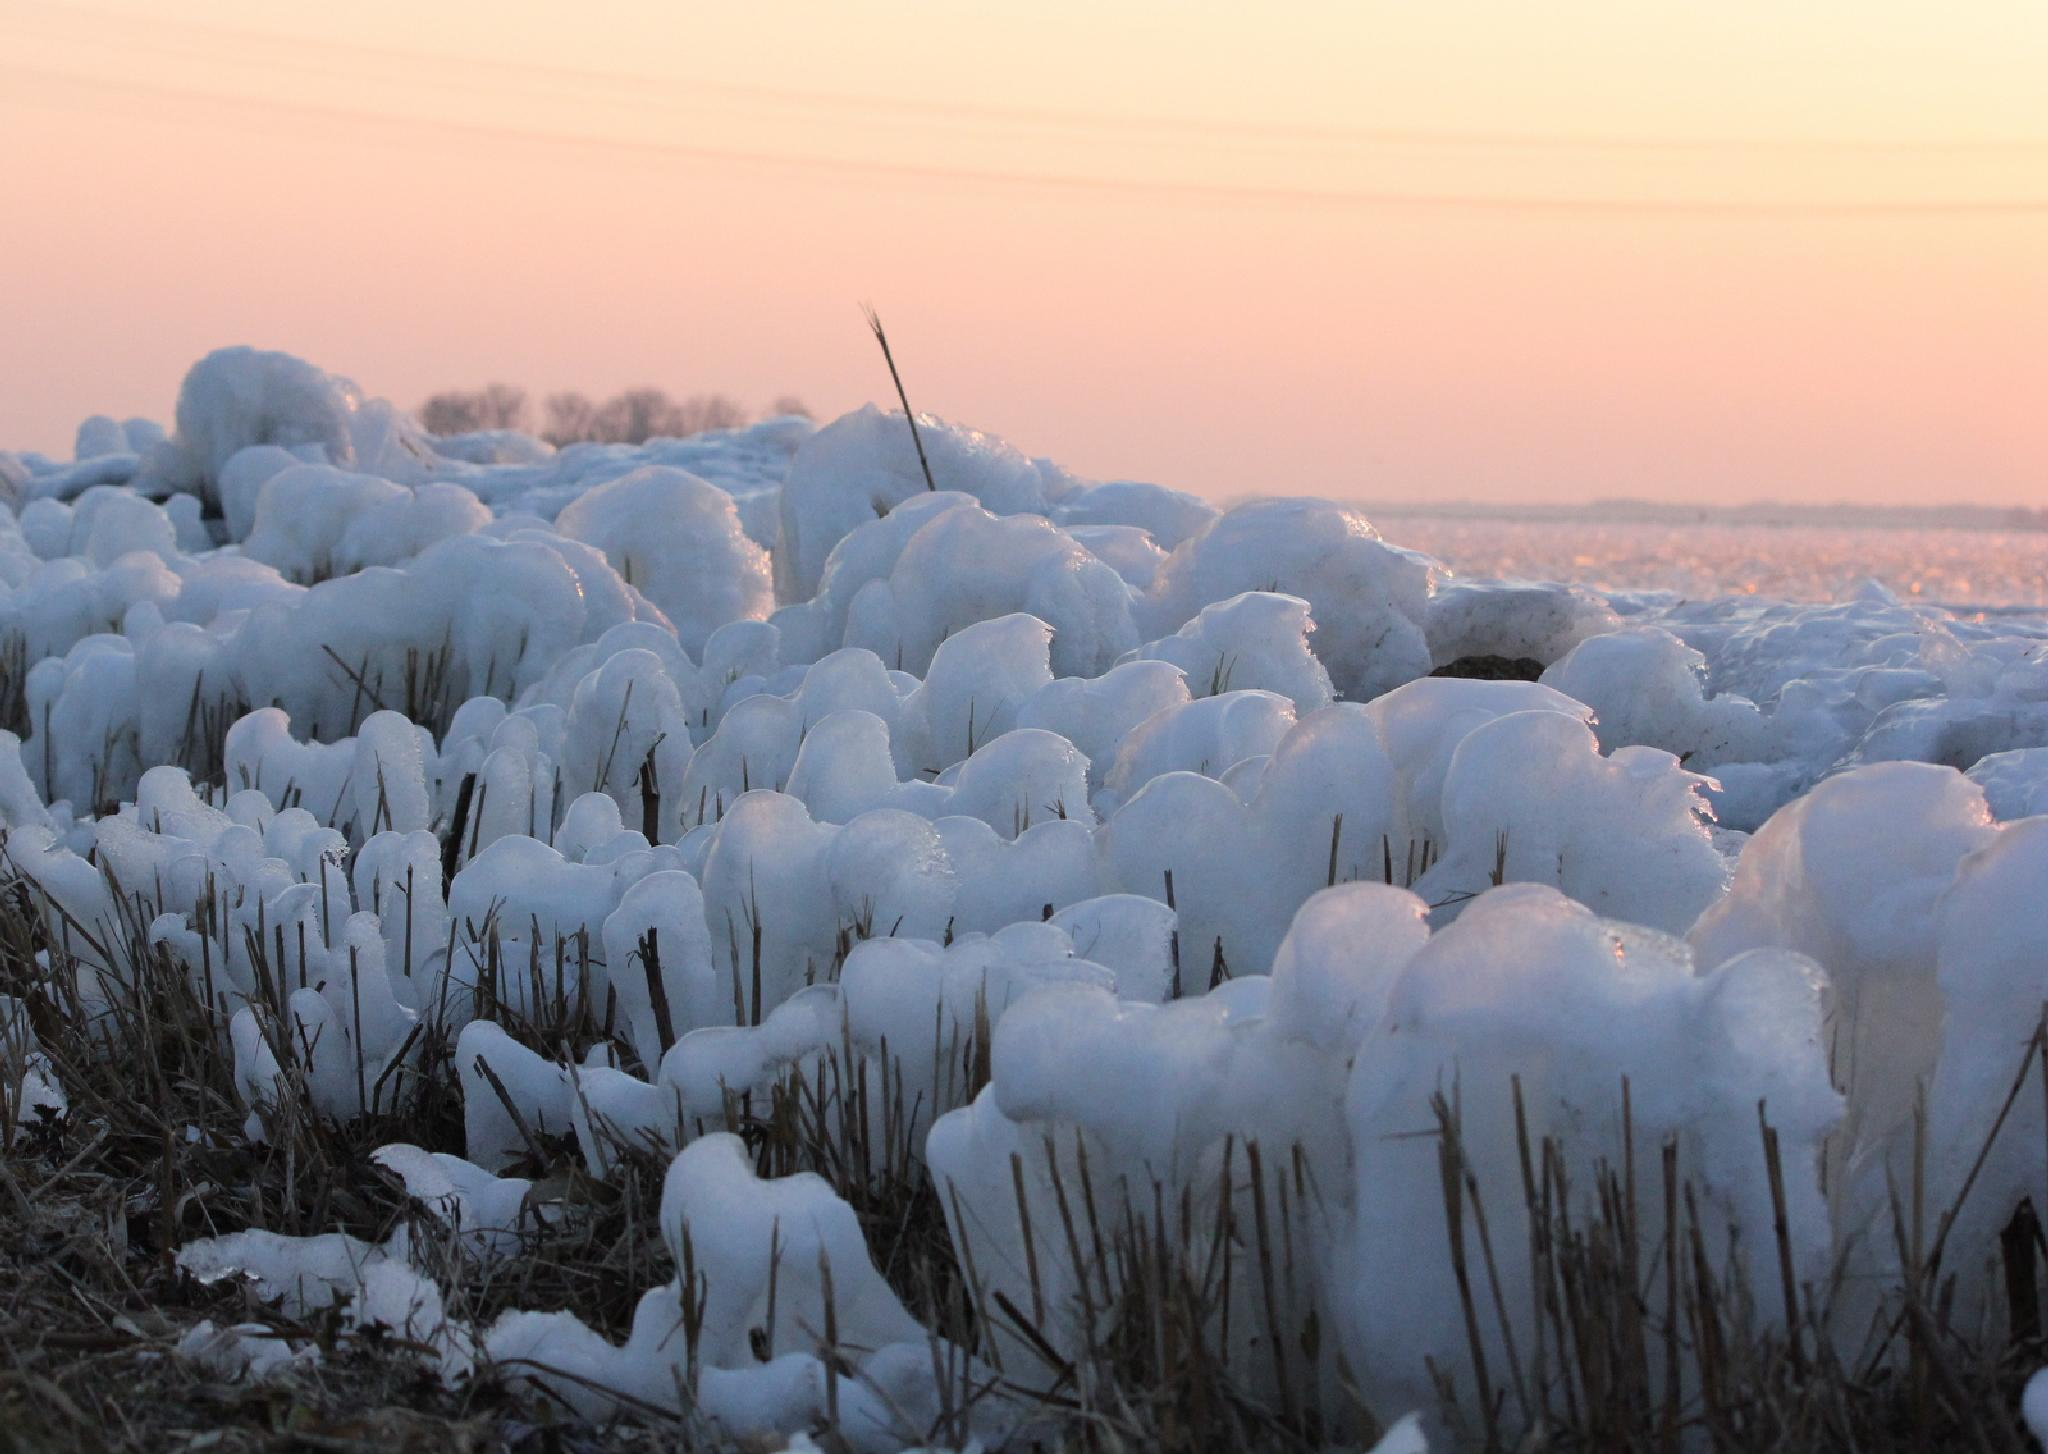 Frost, wind and water by Henry Geerling